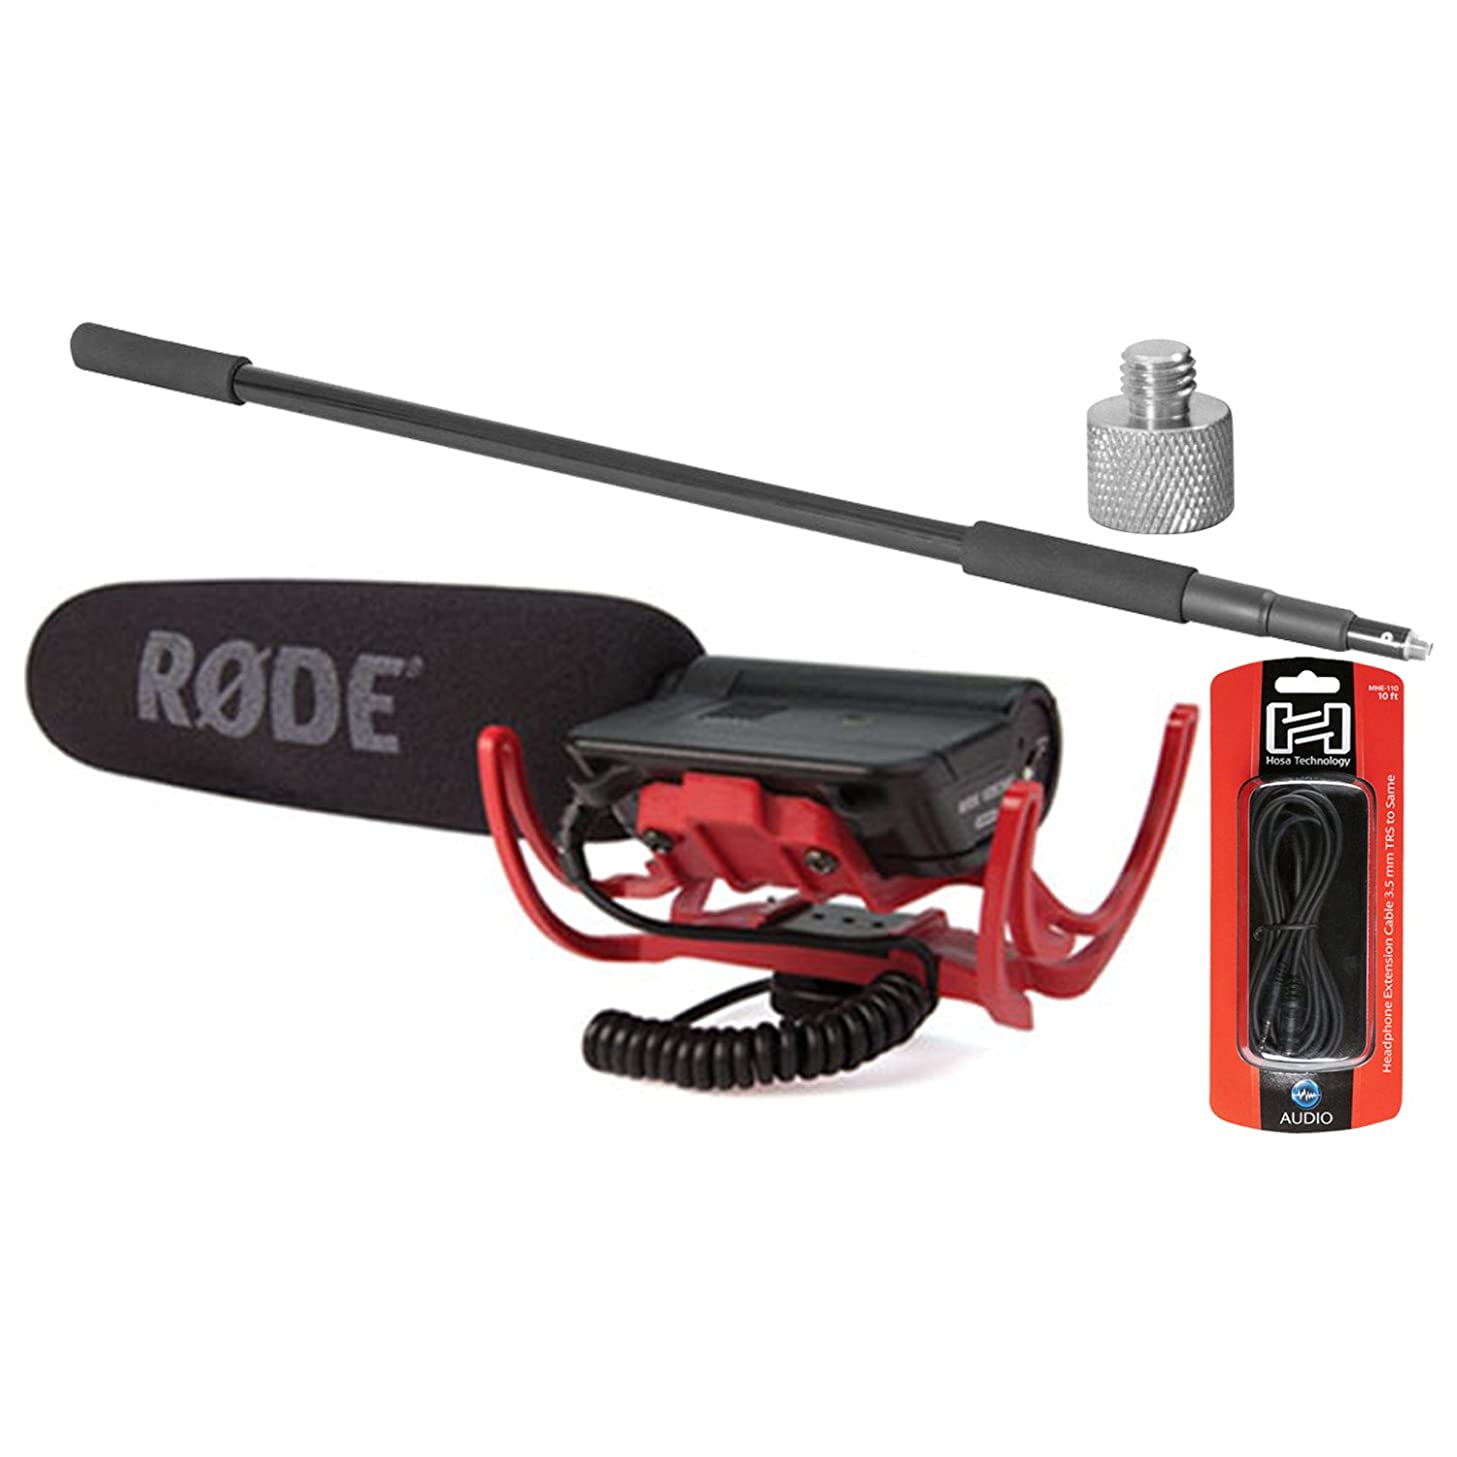 Rode VideoMic Shotgun Condenser Microphone w/ Boom Pole, 10' Extension Cable, and Adaptor